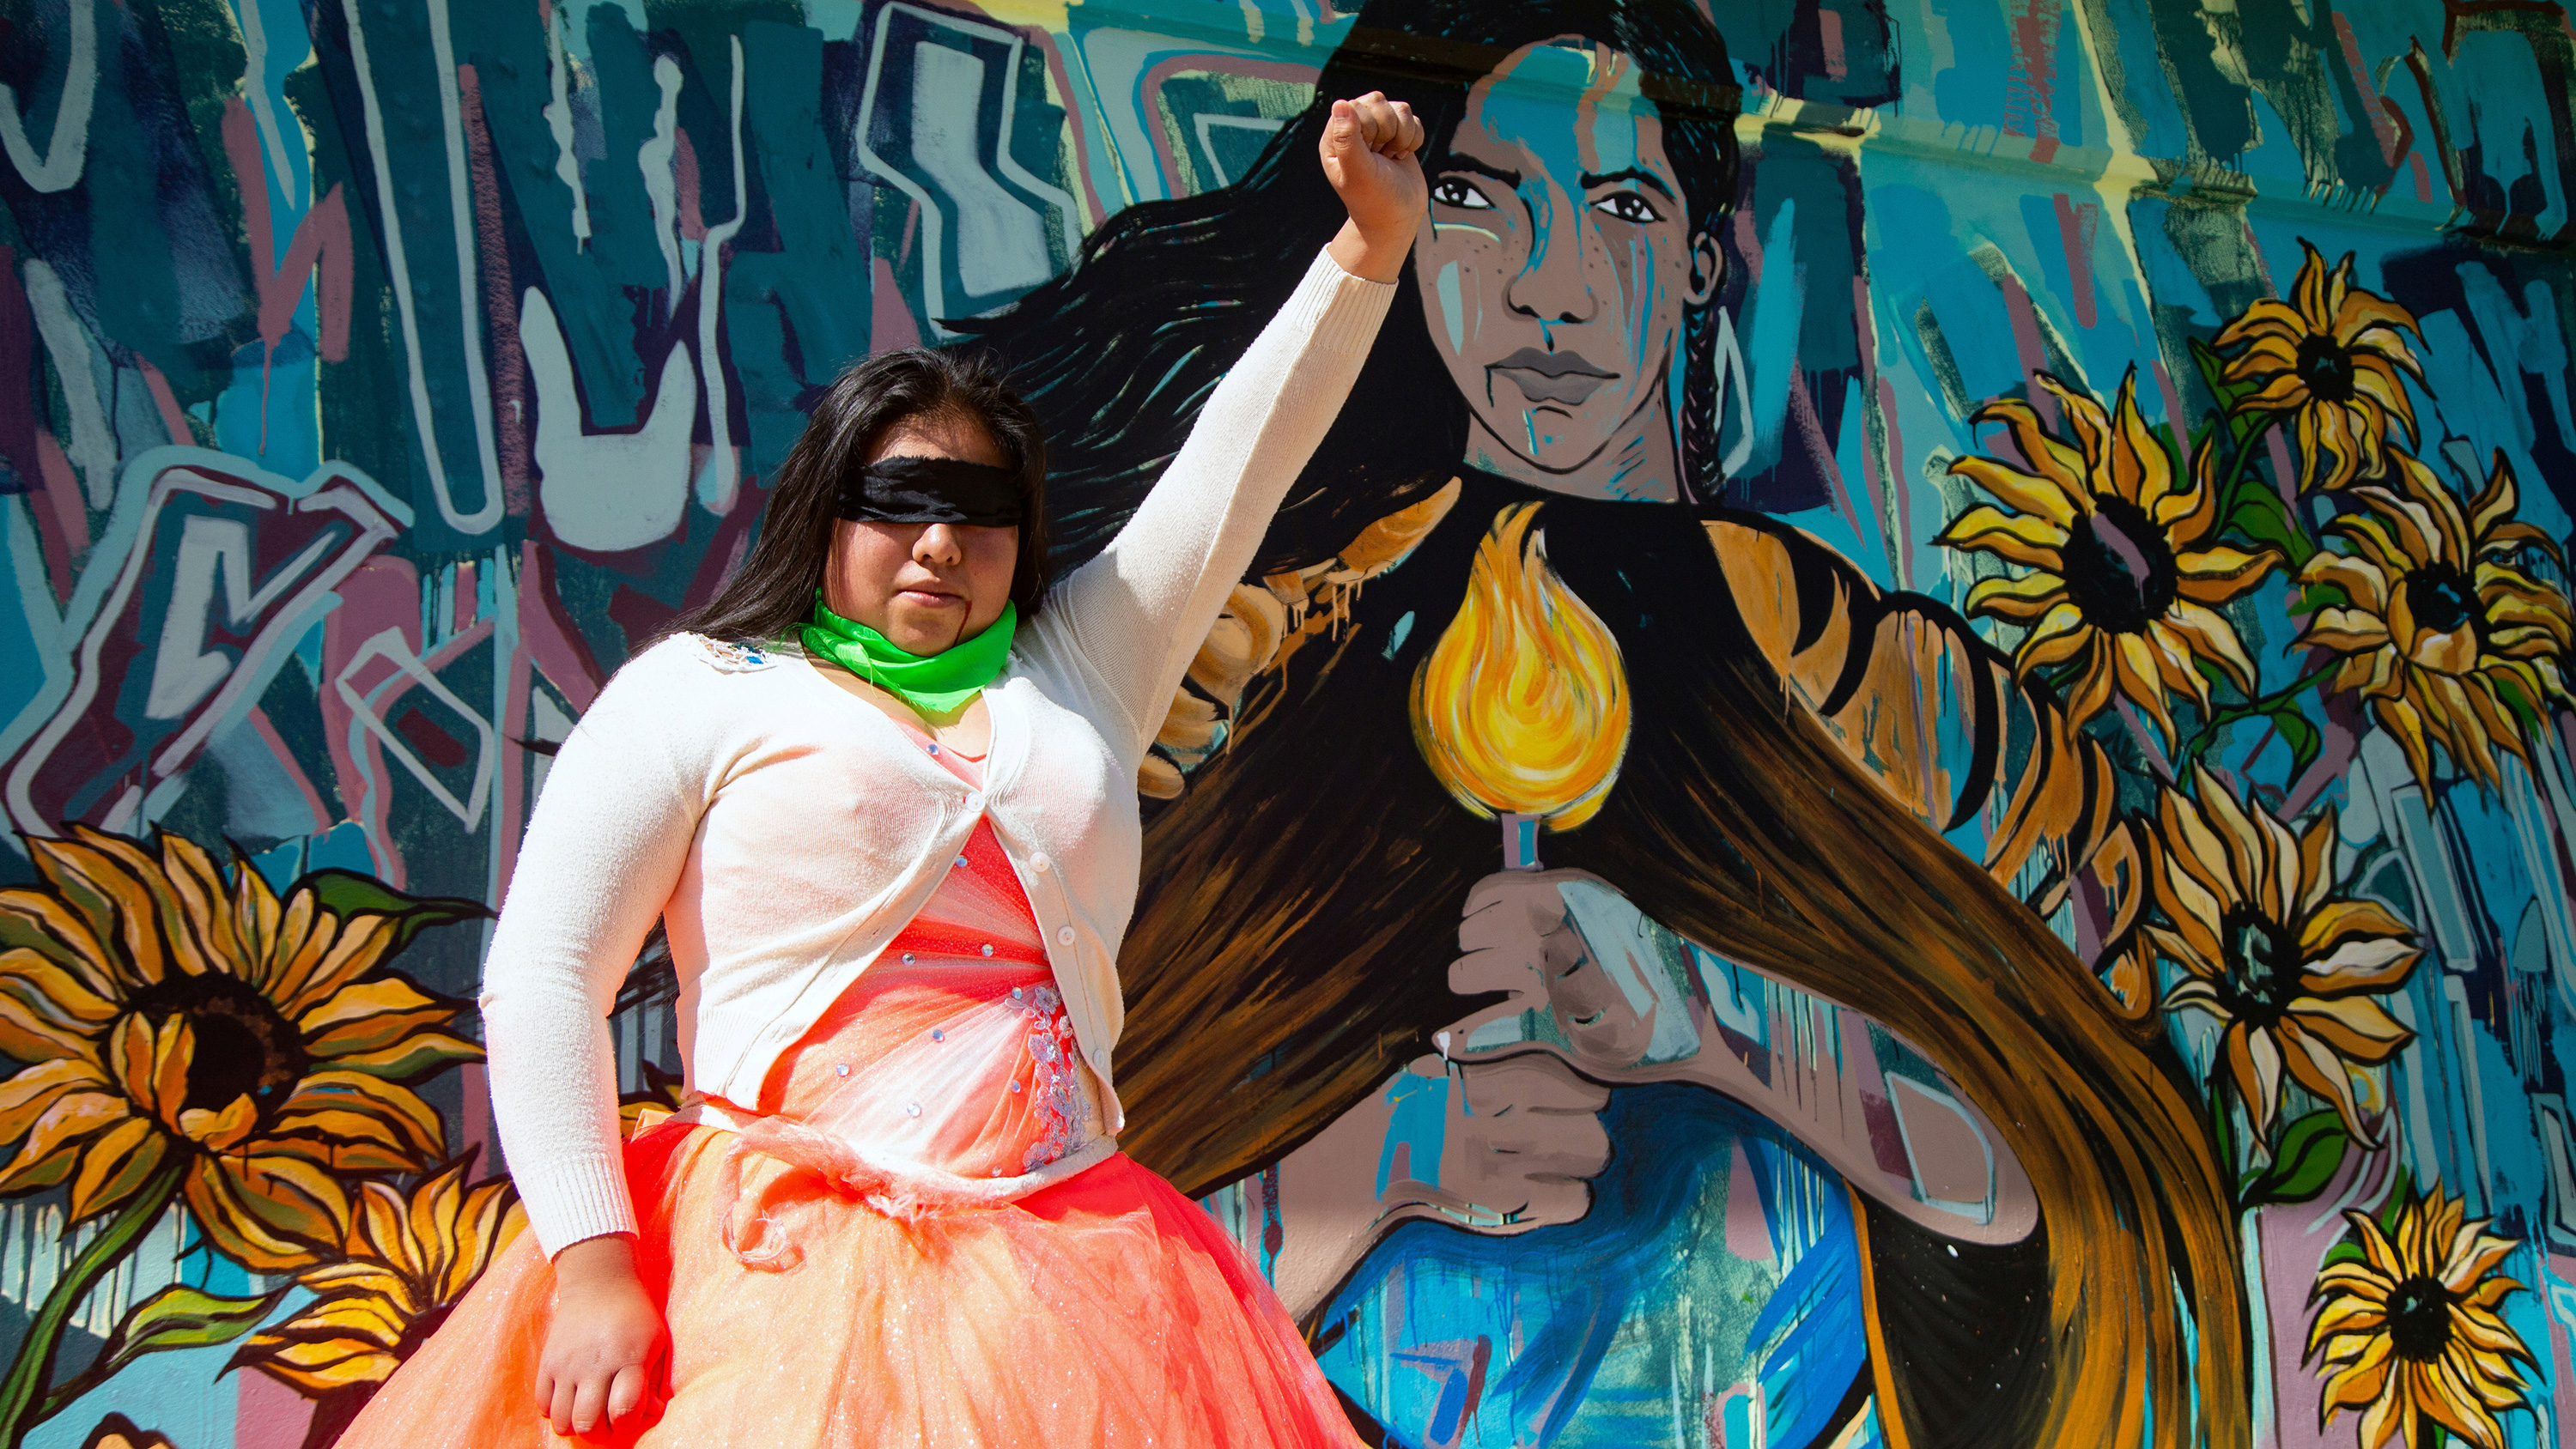 The photo shows a woman in an orange dress and white cardigan with a blindfold over her face holding her fist in the air while she stands in front of a painted mural of a woman holding a candle.